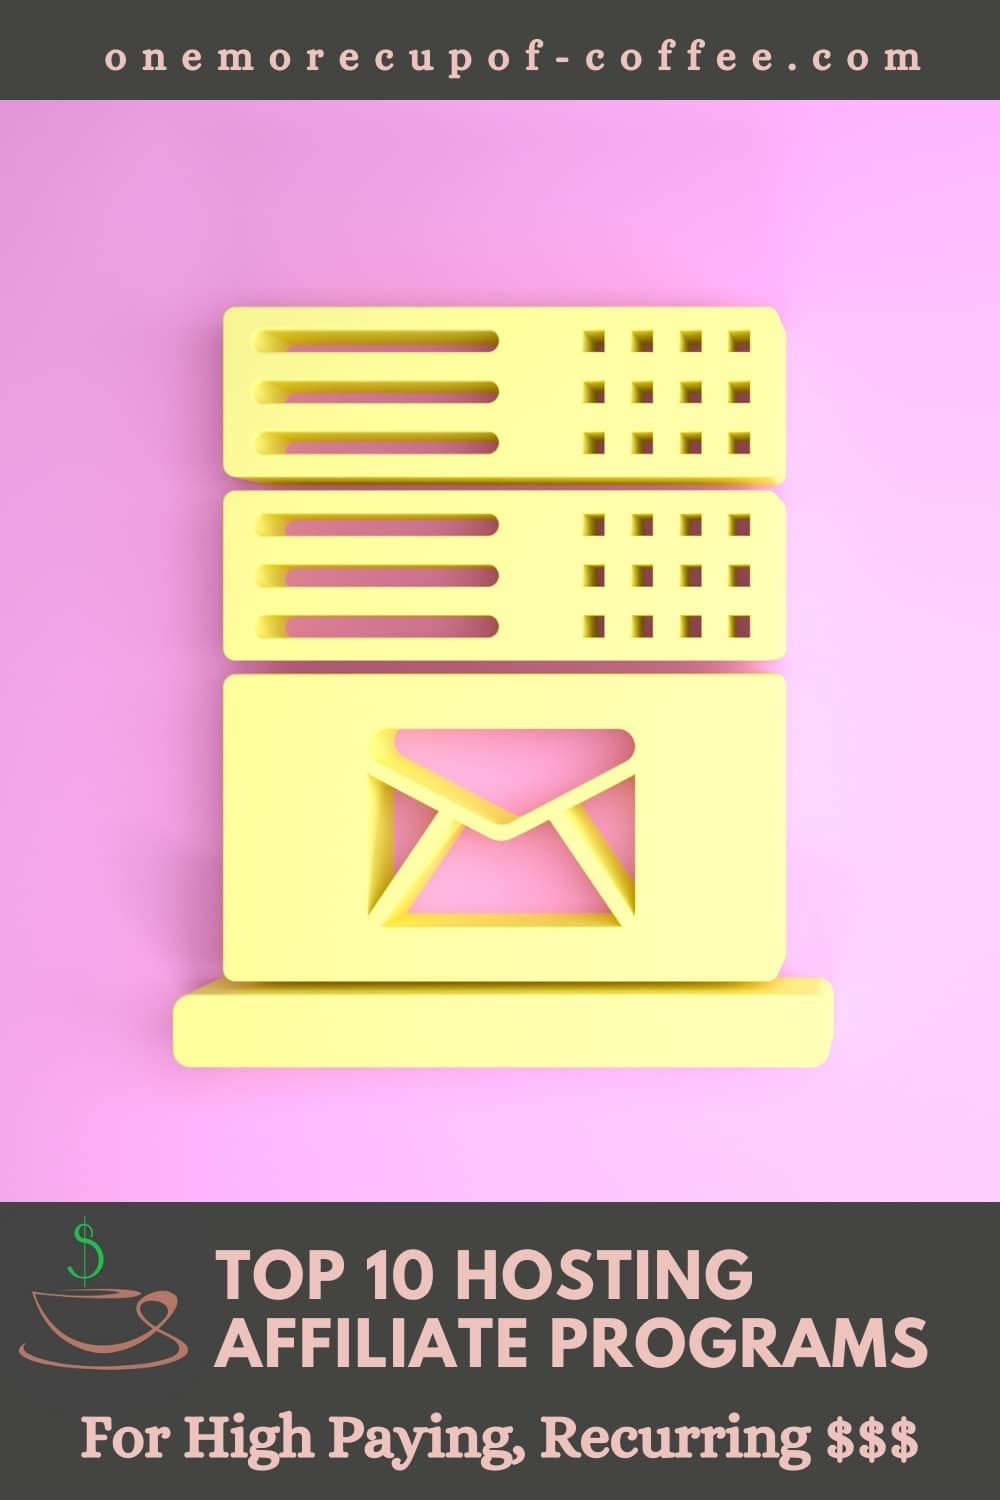 """beige internet server icon against a pink background; with text overlay """"Top 10 Hosting Affiliate Programs For High Paying, Recurring $$$"""""""